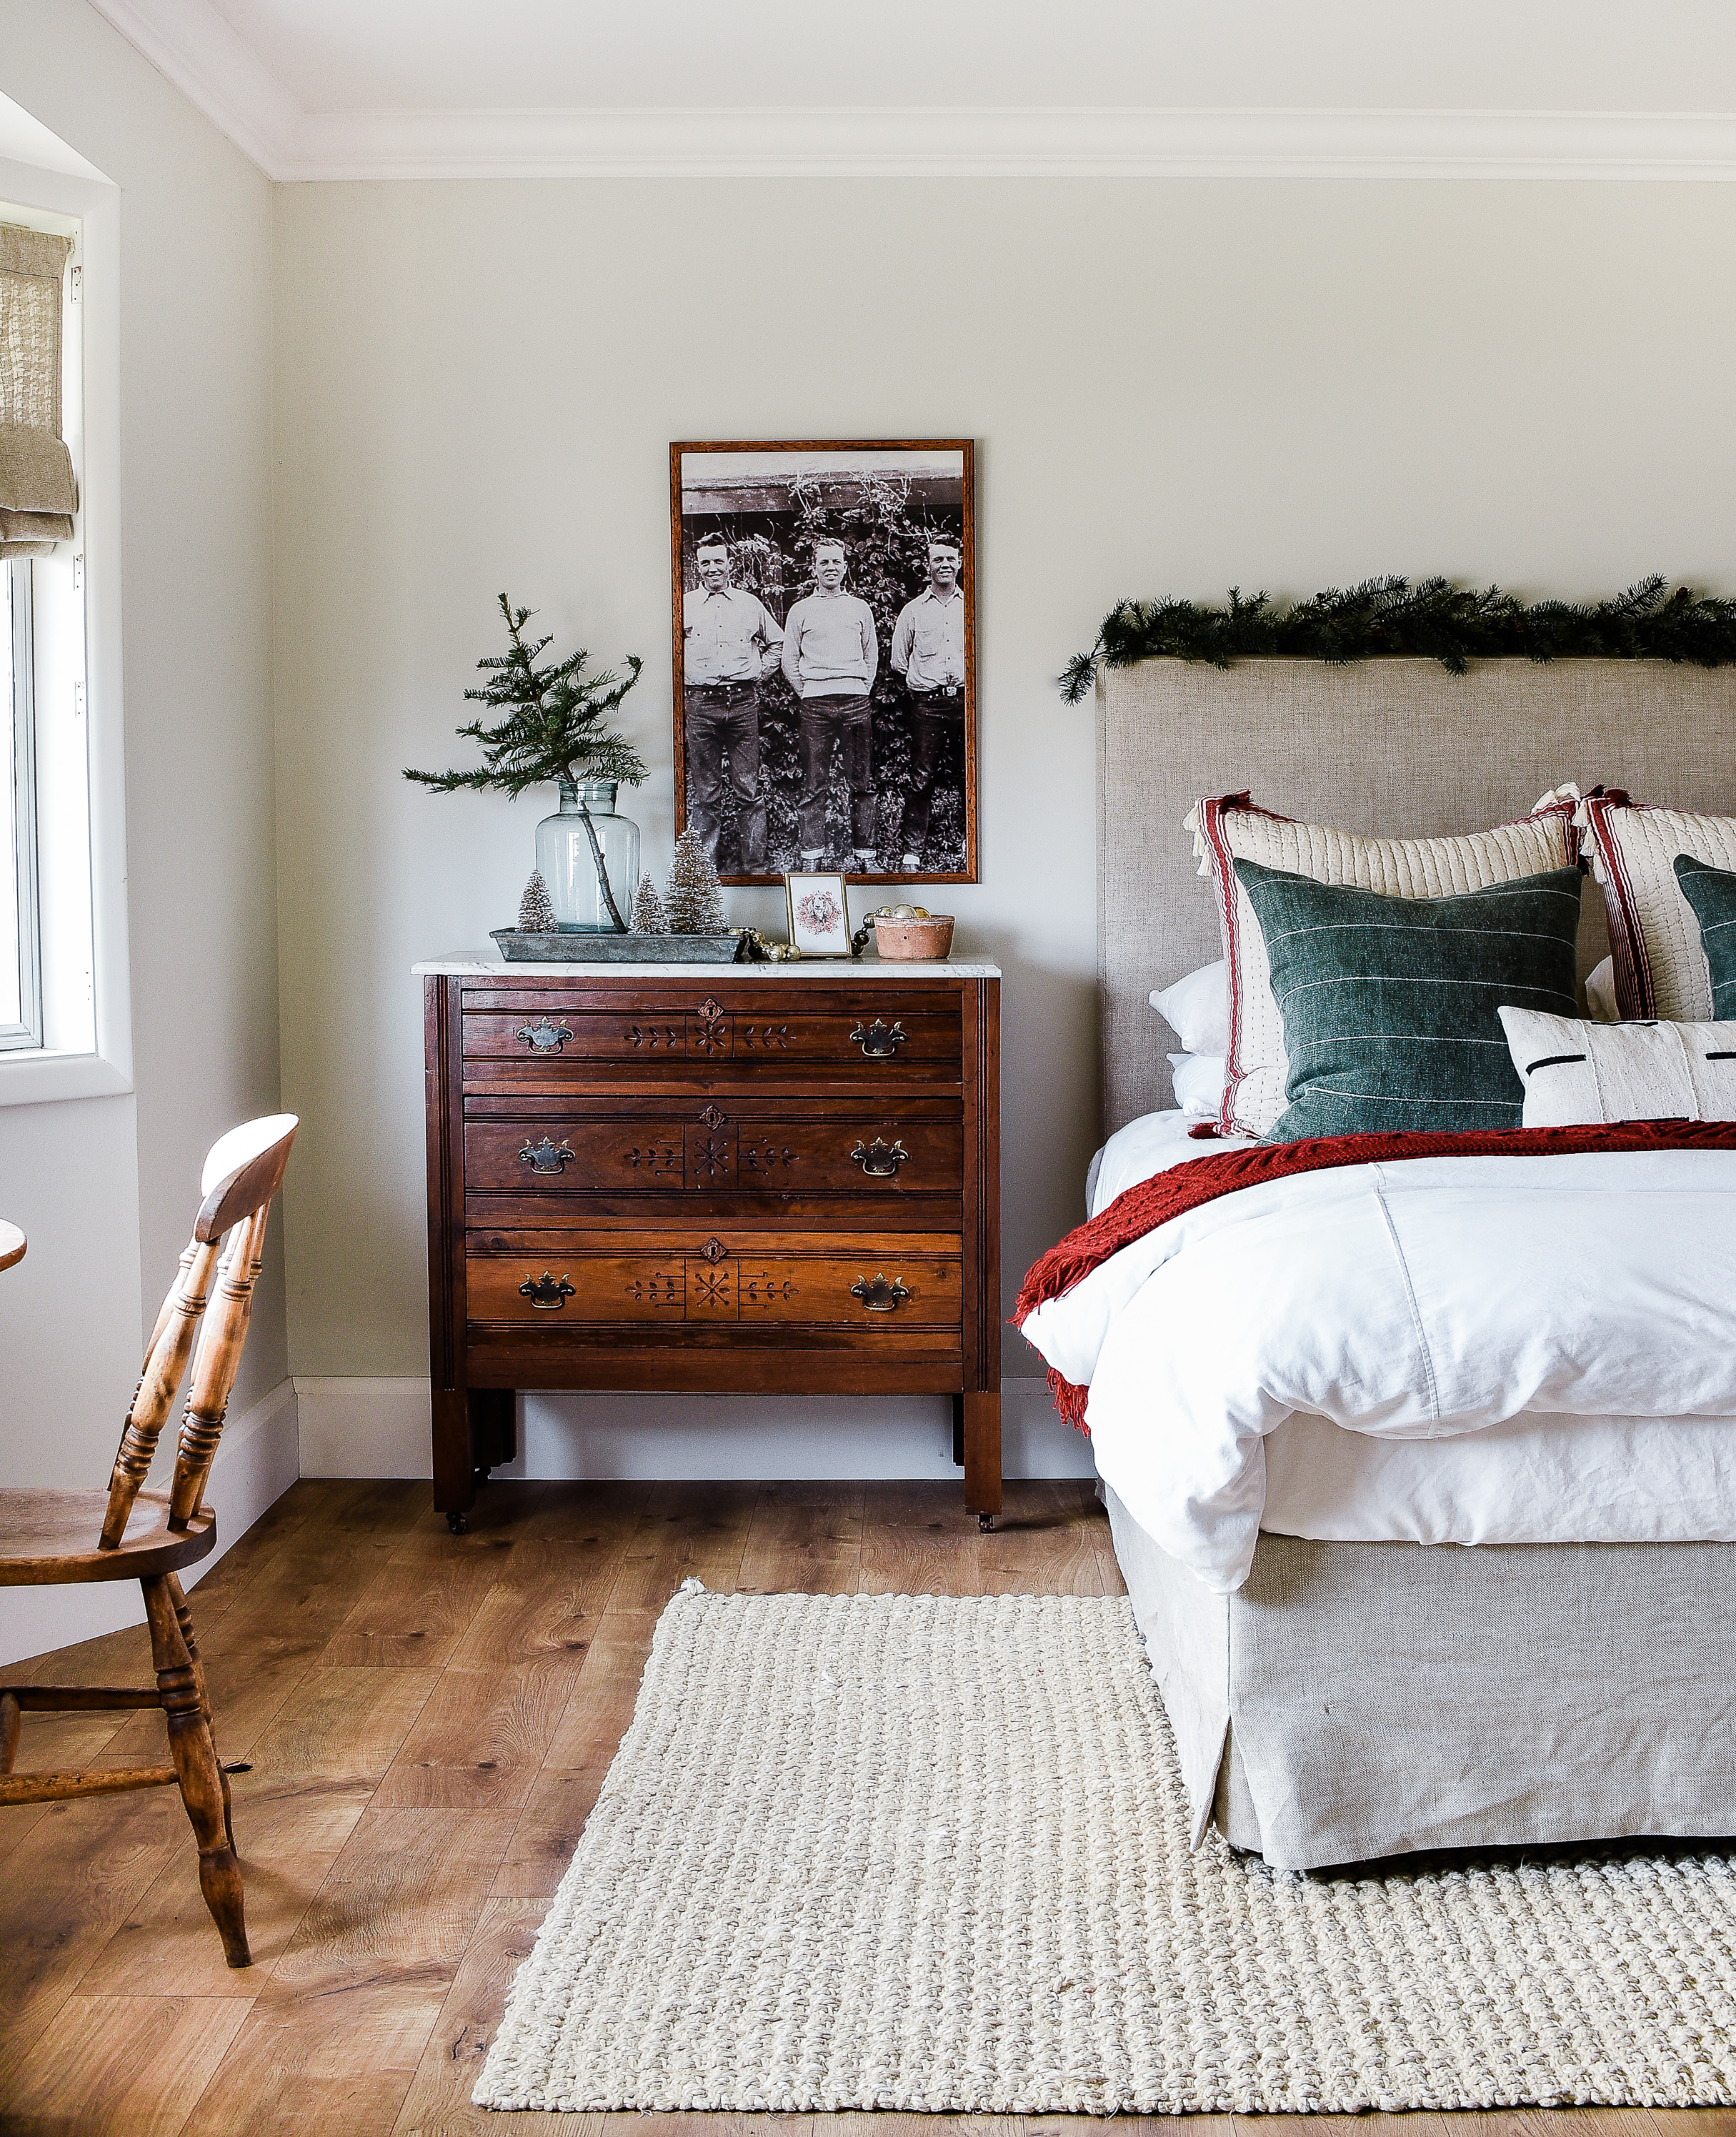 Farmhouse Christmas decorating ideas from boxwoodavenue.com